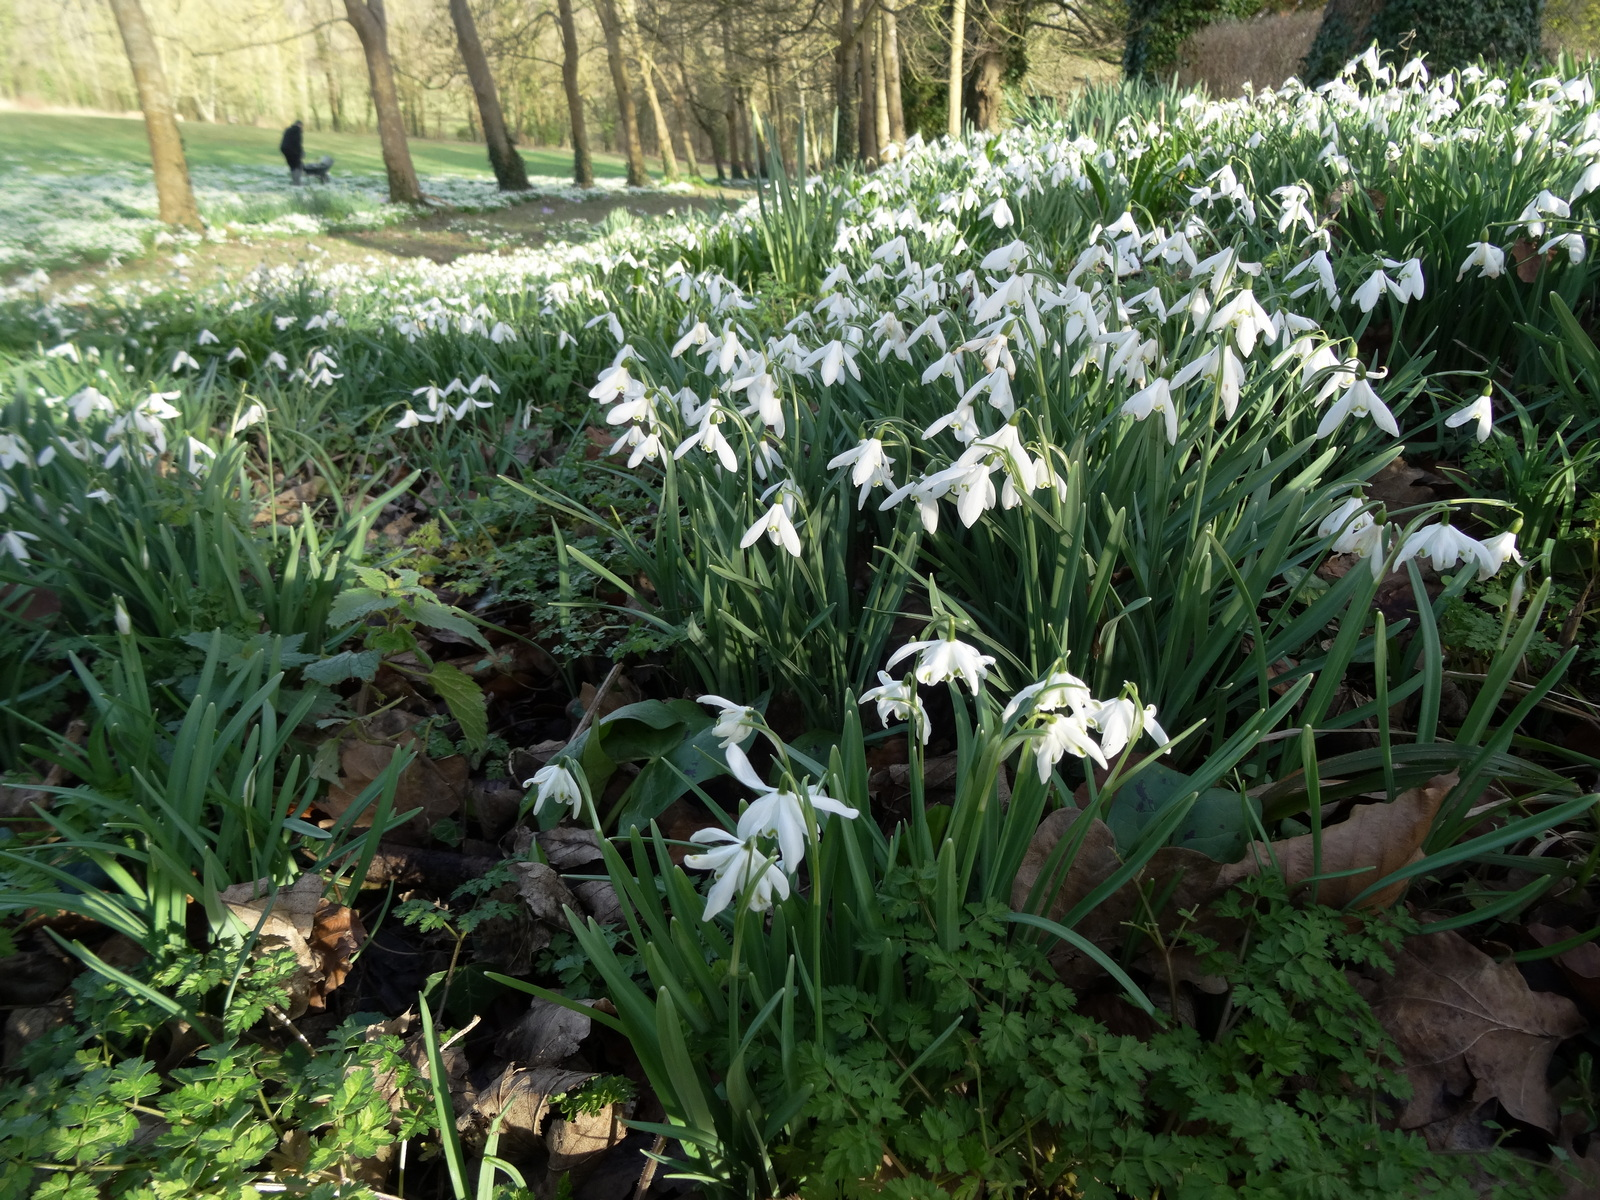 'Snowdrop Spring' by Peter Read